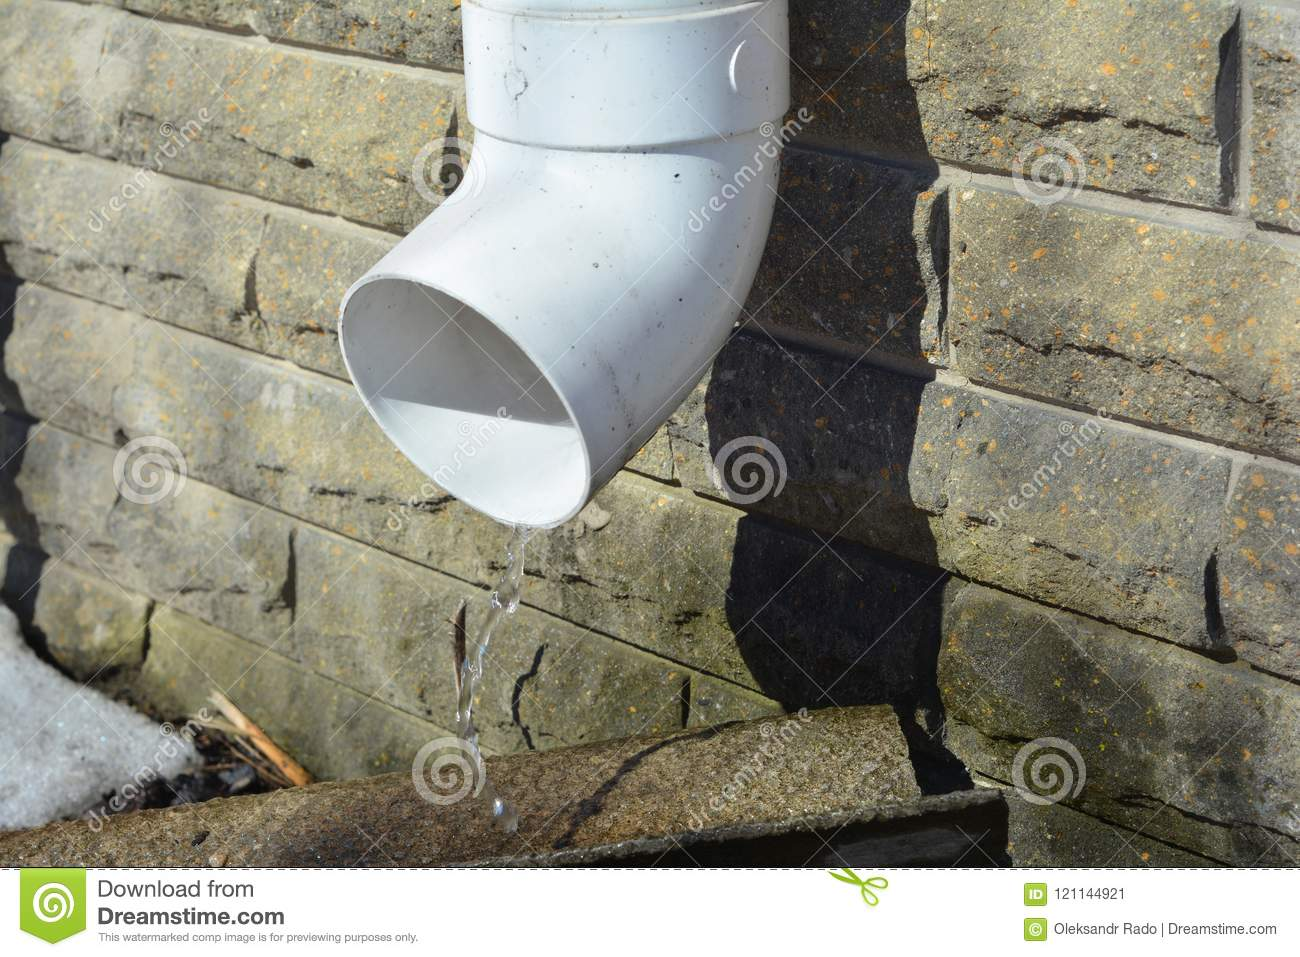 Rain Gutter Downspout Pipe For Roof Water Drainage And Waterproofing House Foundation Wall Stock Image Image Of Brick Drainage 121144921